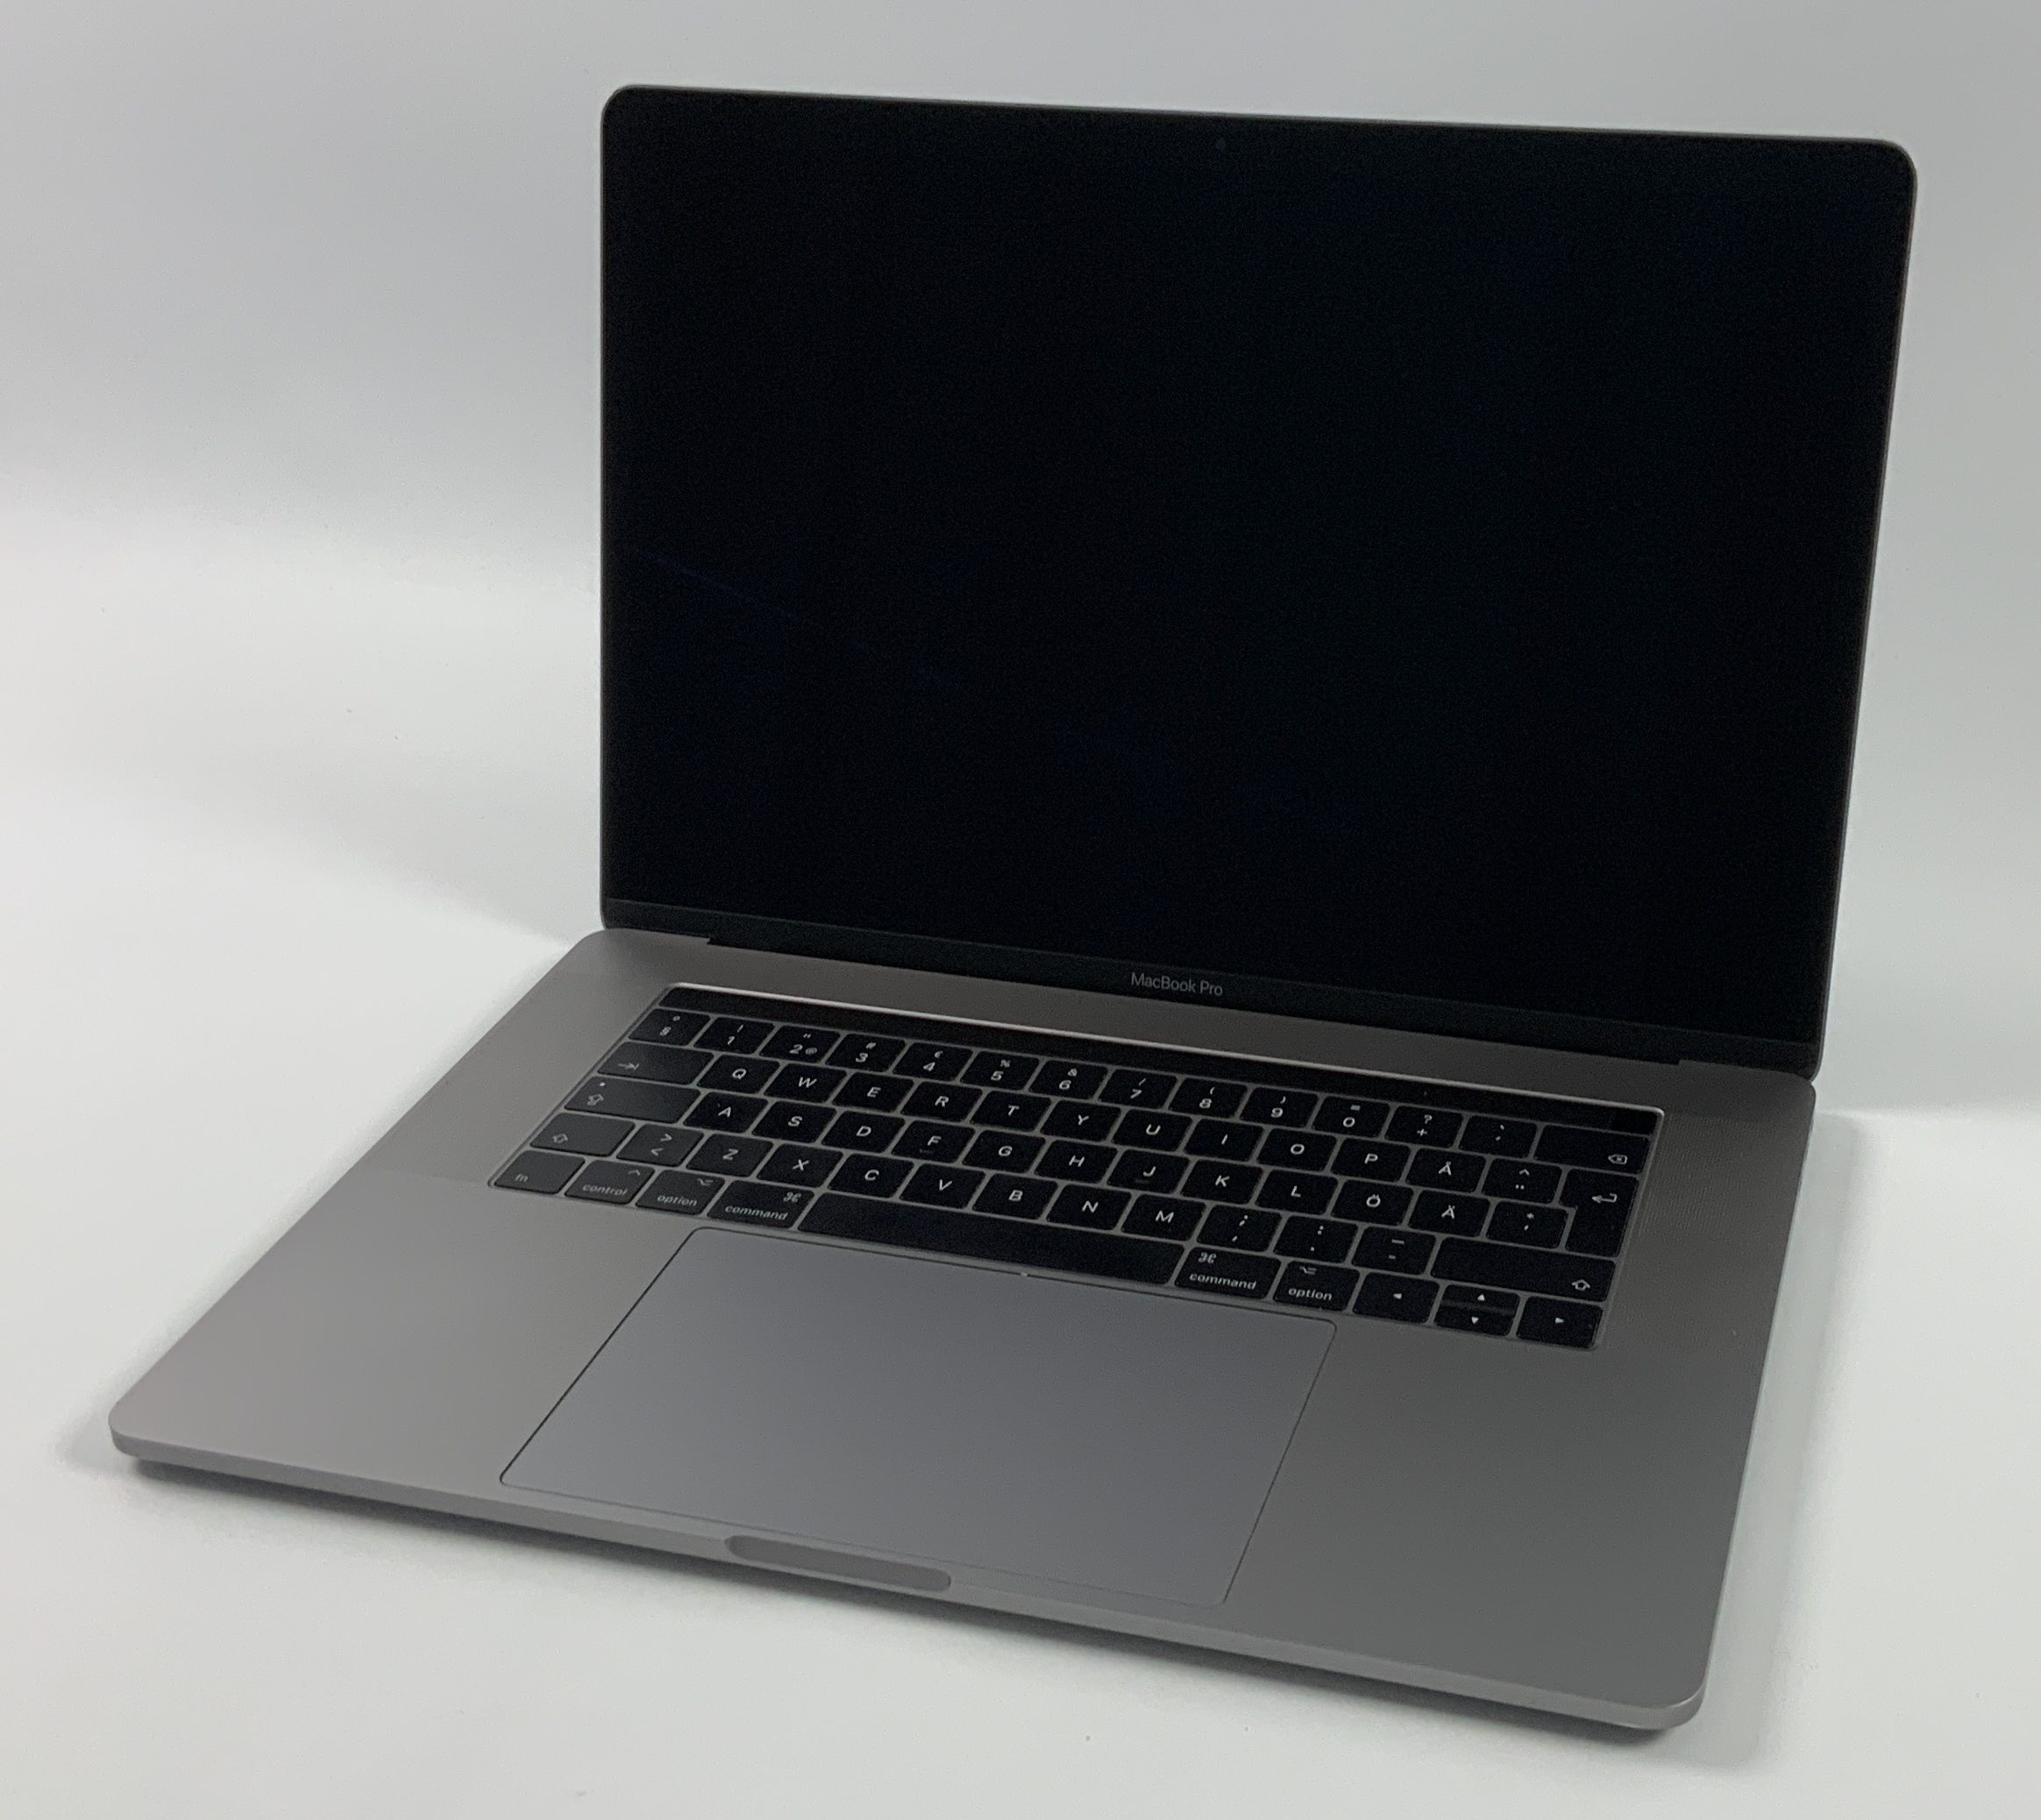 "MacBook Pro 15"" Touch Bar Mid 2017 (Intel Quad-Core i7 2.9 GHz 16 GB RAM 512 GB SSD), Space Gray, Intel Quad-Core i7 2.9 GHz, 16 GB RAM, 512 GB SSD, obraz 1"